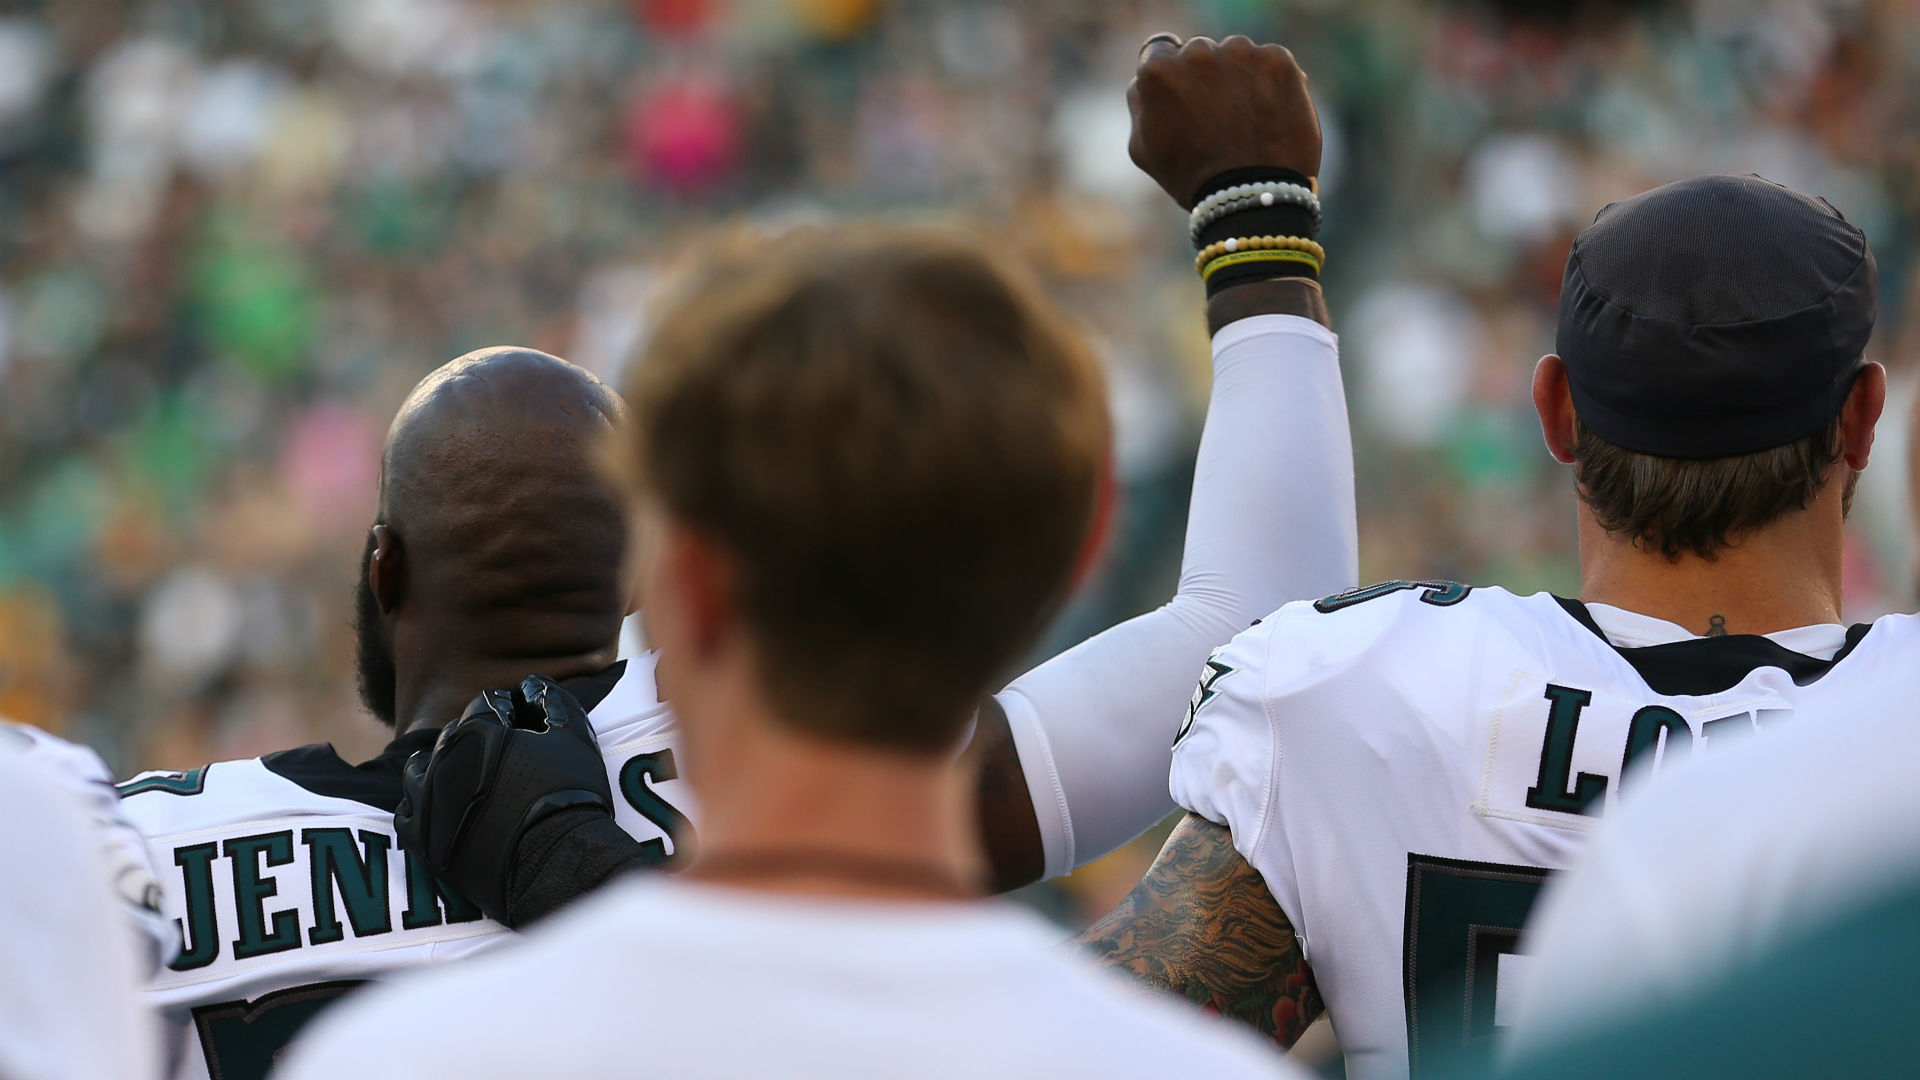 Eagles, 'Fins players protest during anthem